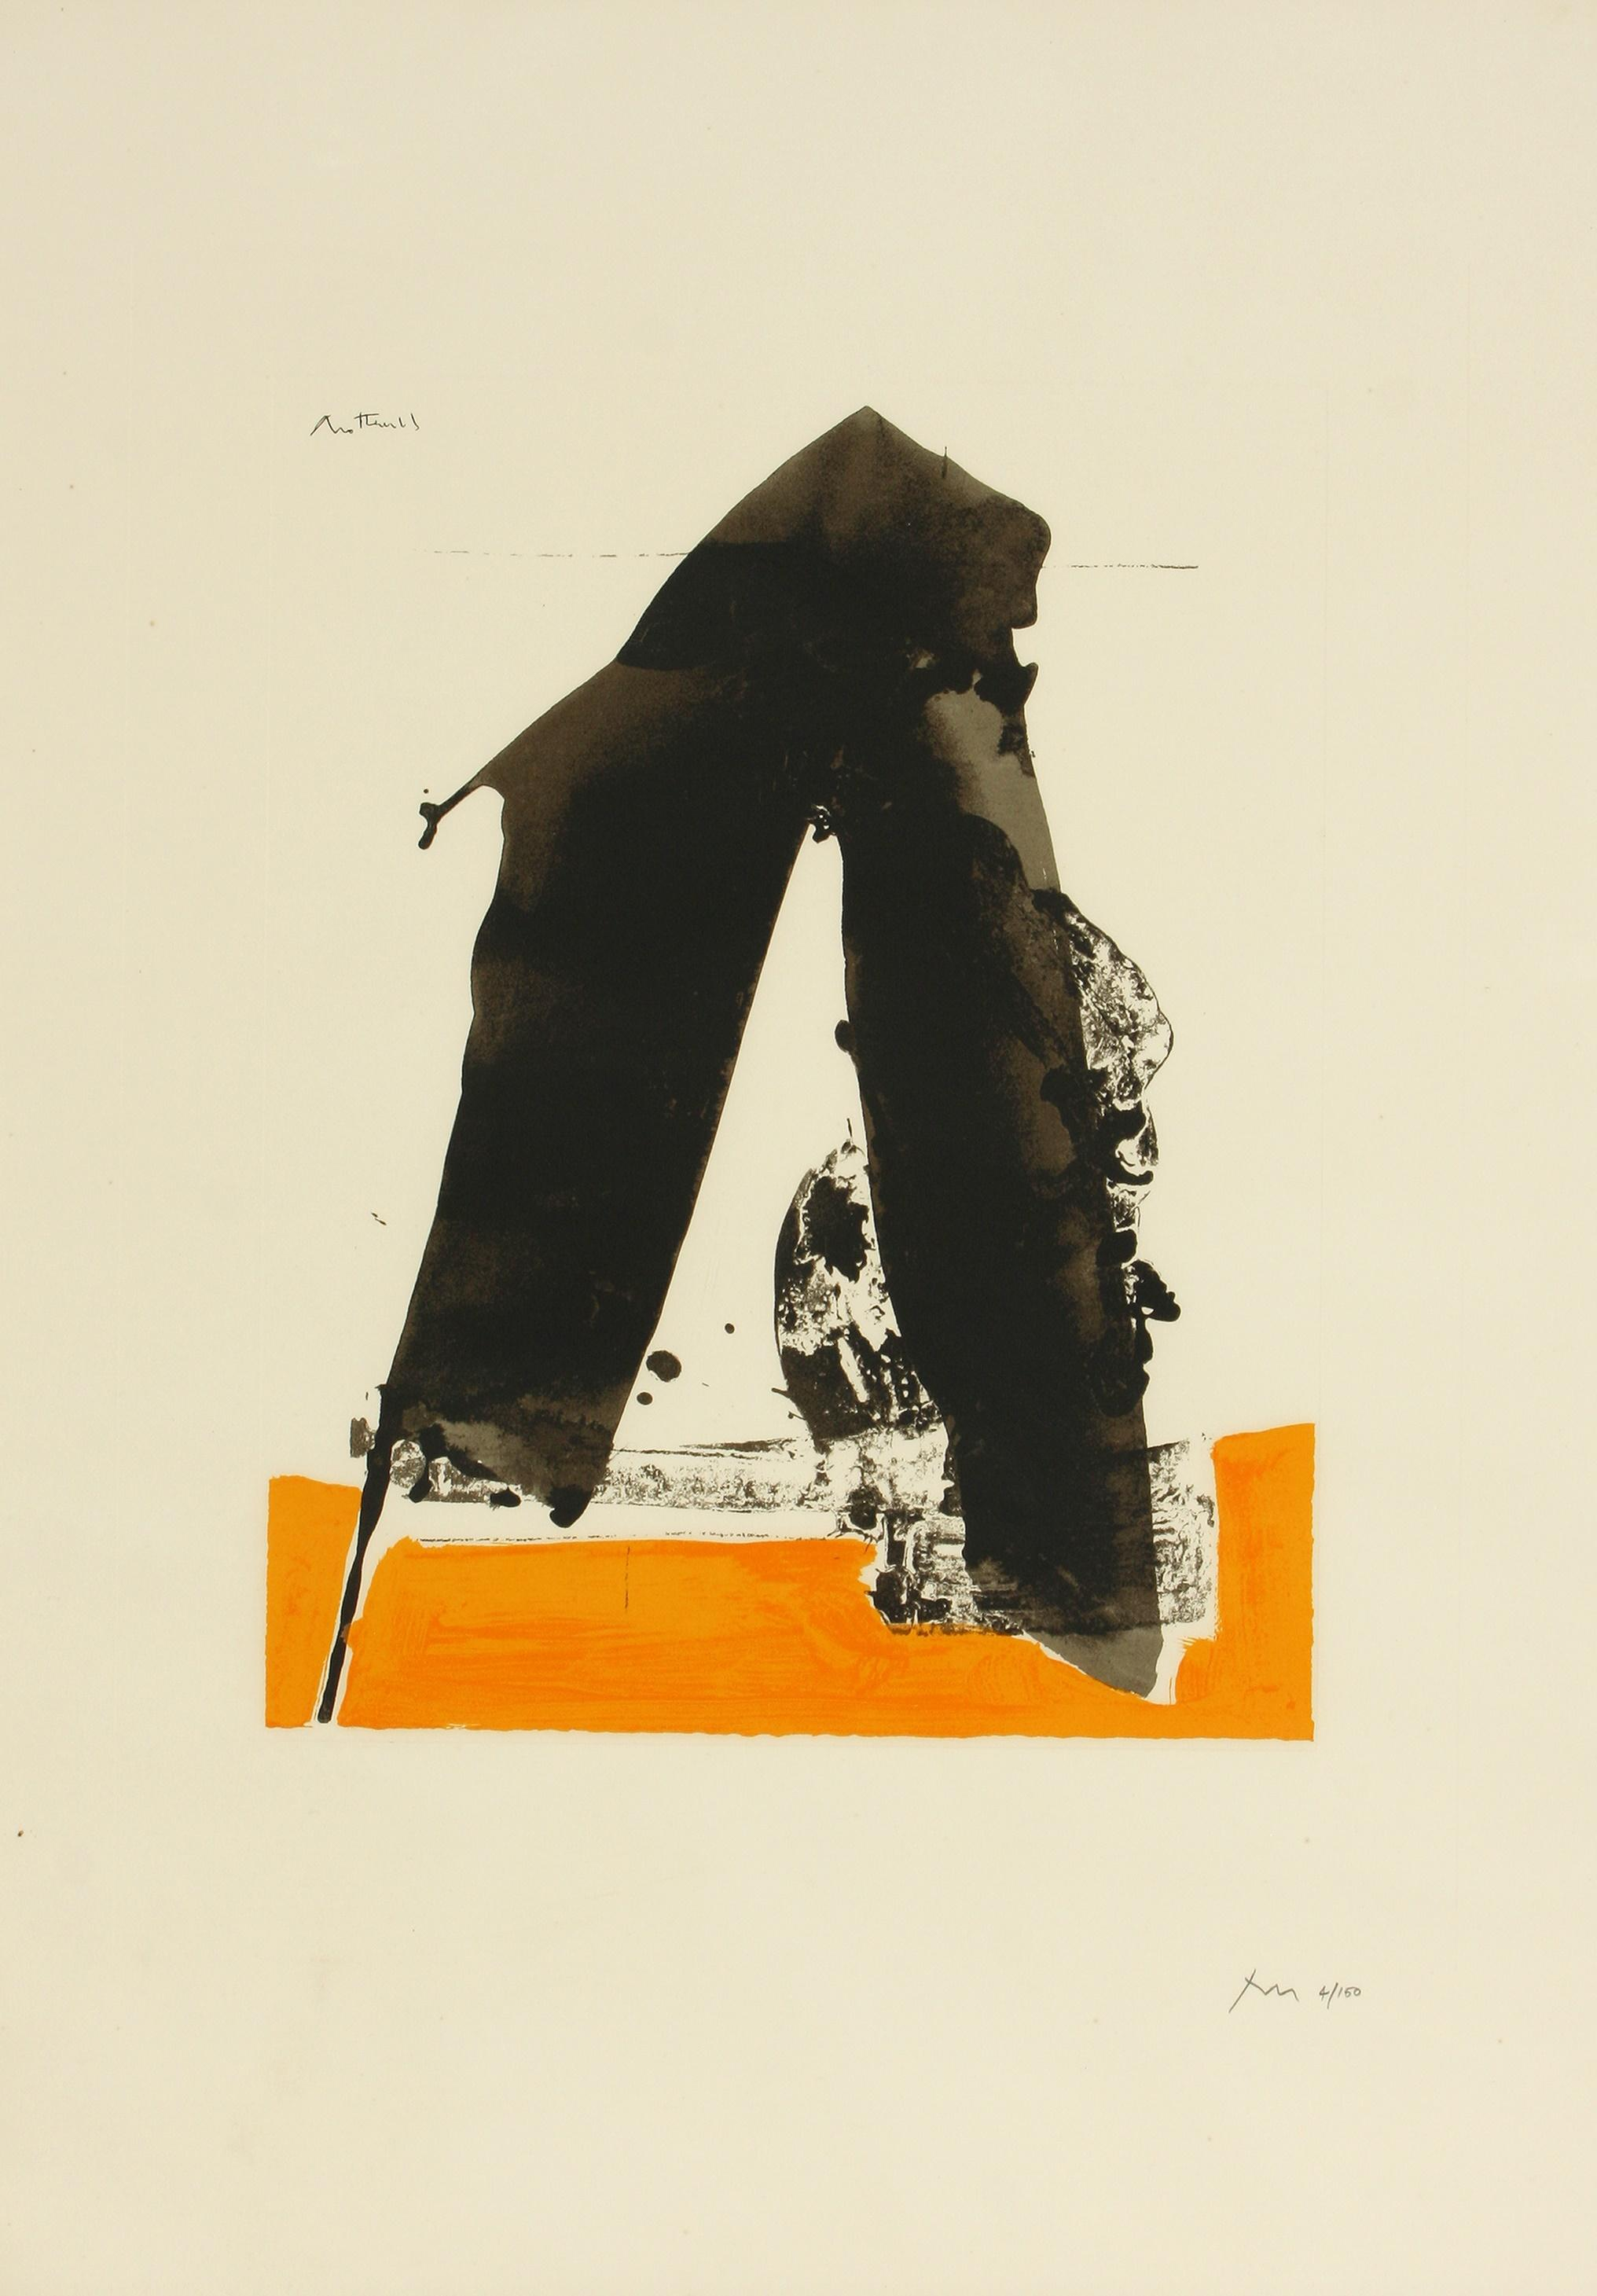 Robert Motherwell (America 1915-1991) Untitled (ref. 79) from the Basque Suite, 1970